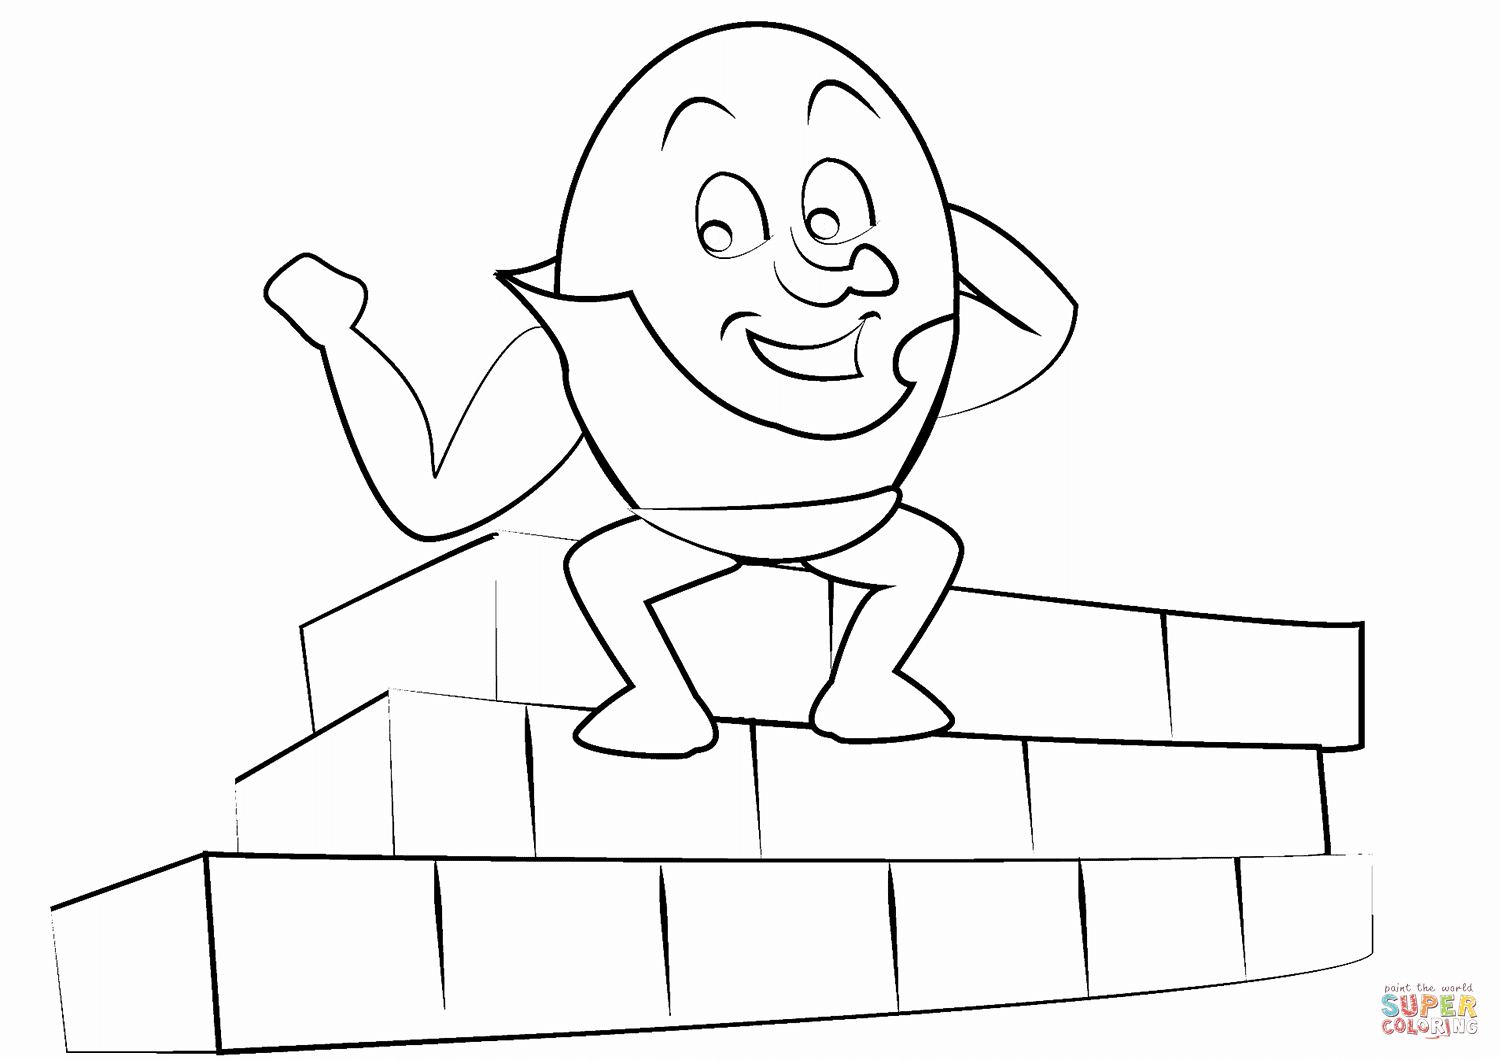 Humpty Dumpty Coloring Page | Free Printable Coloring Pages - Printable Humpty Dumpty Puzzle